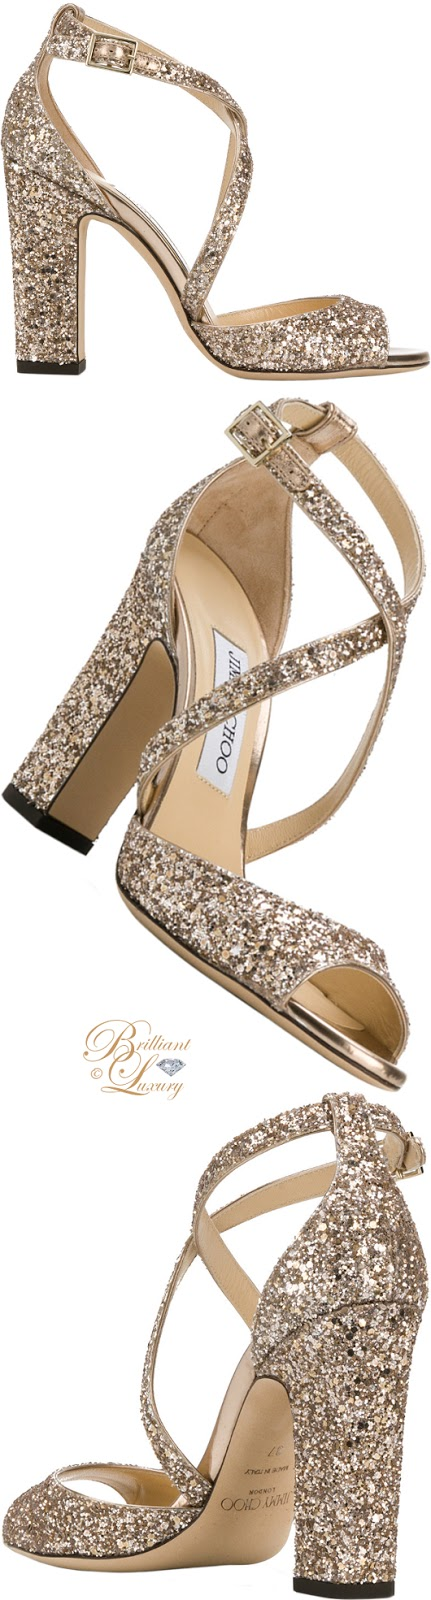 Brilliant Luxury ♦  Jimmy Choo Carrie sandals